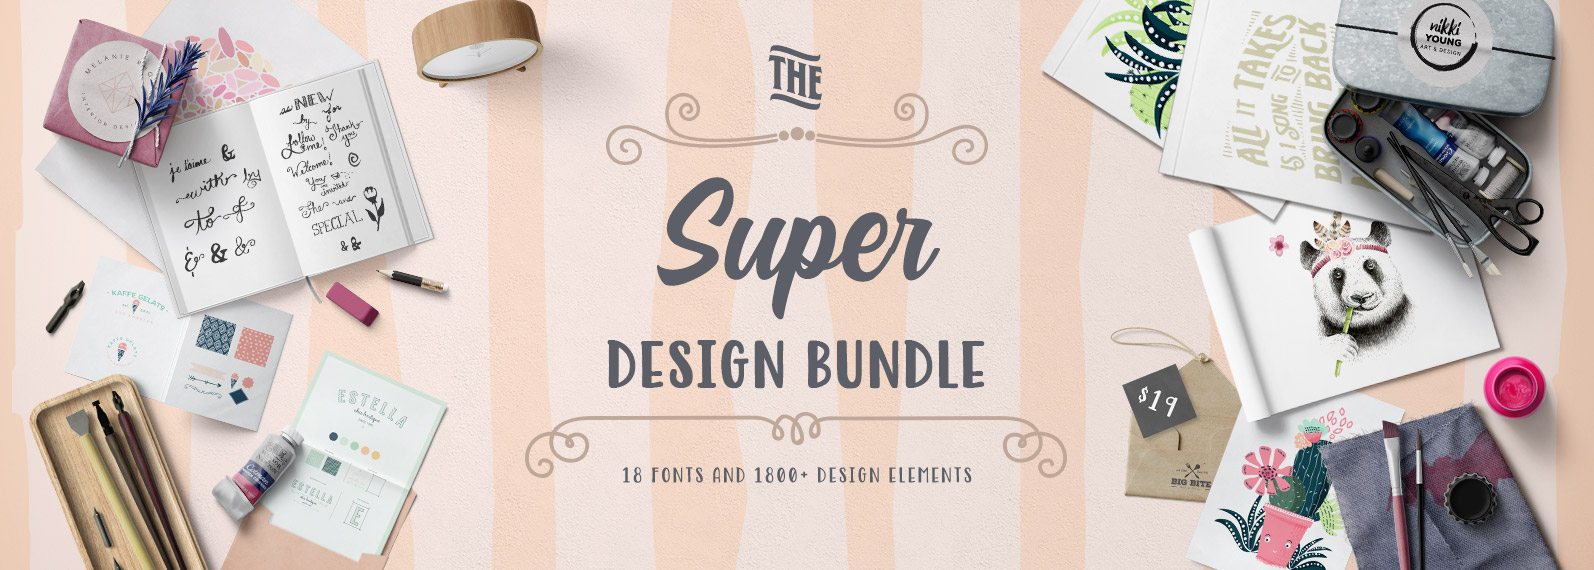 The-Super-Design-Bundle_MainCover.jpg